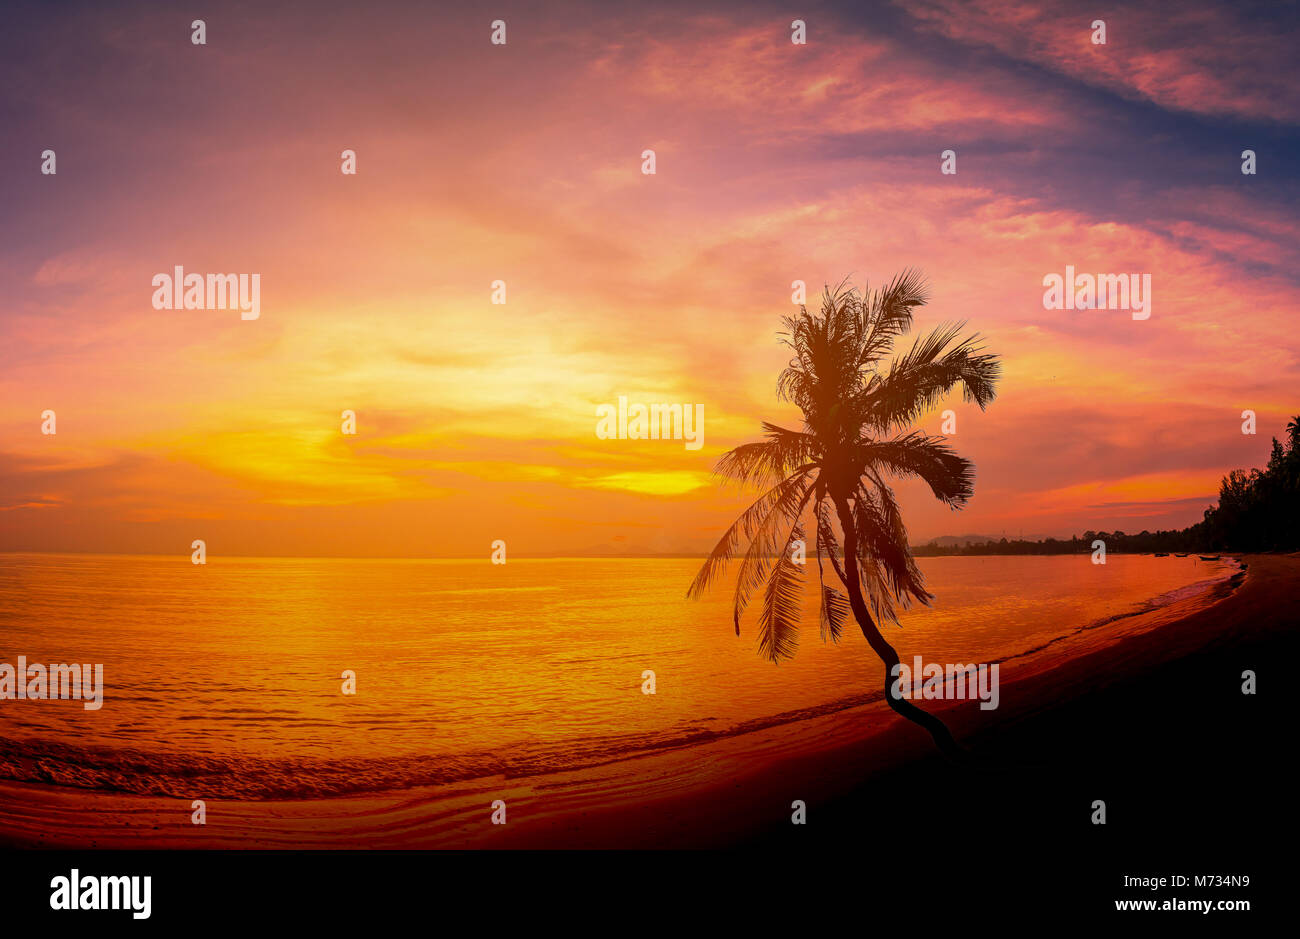 Coconut Forest Stock Photos & Coconut Forest Stock Images